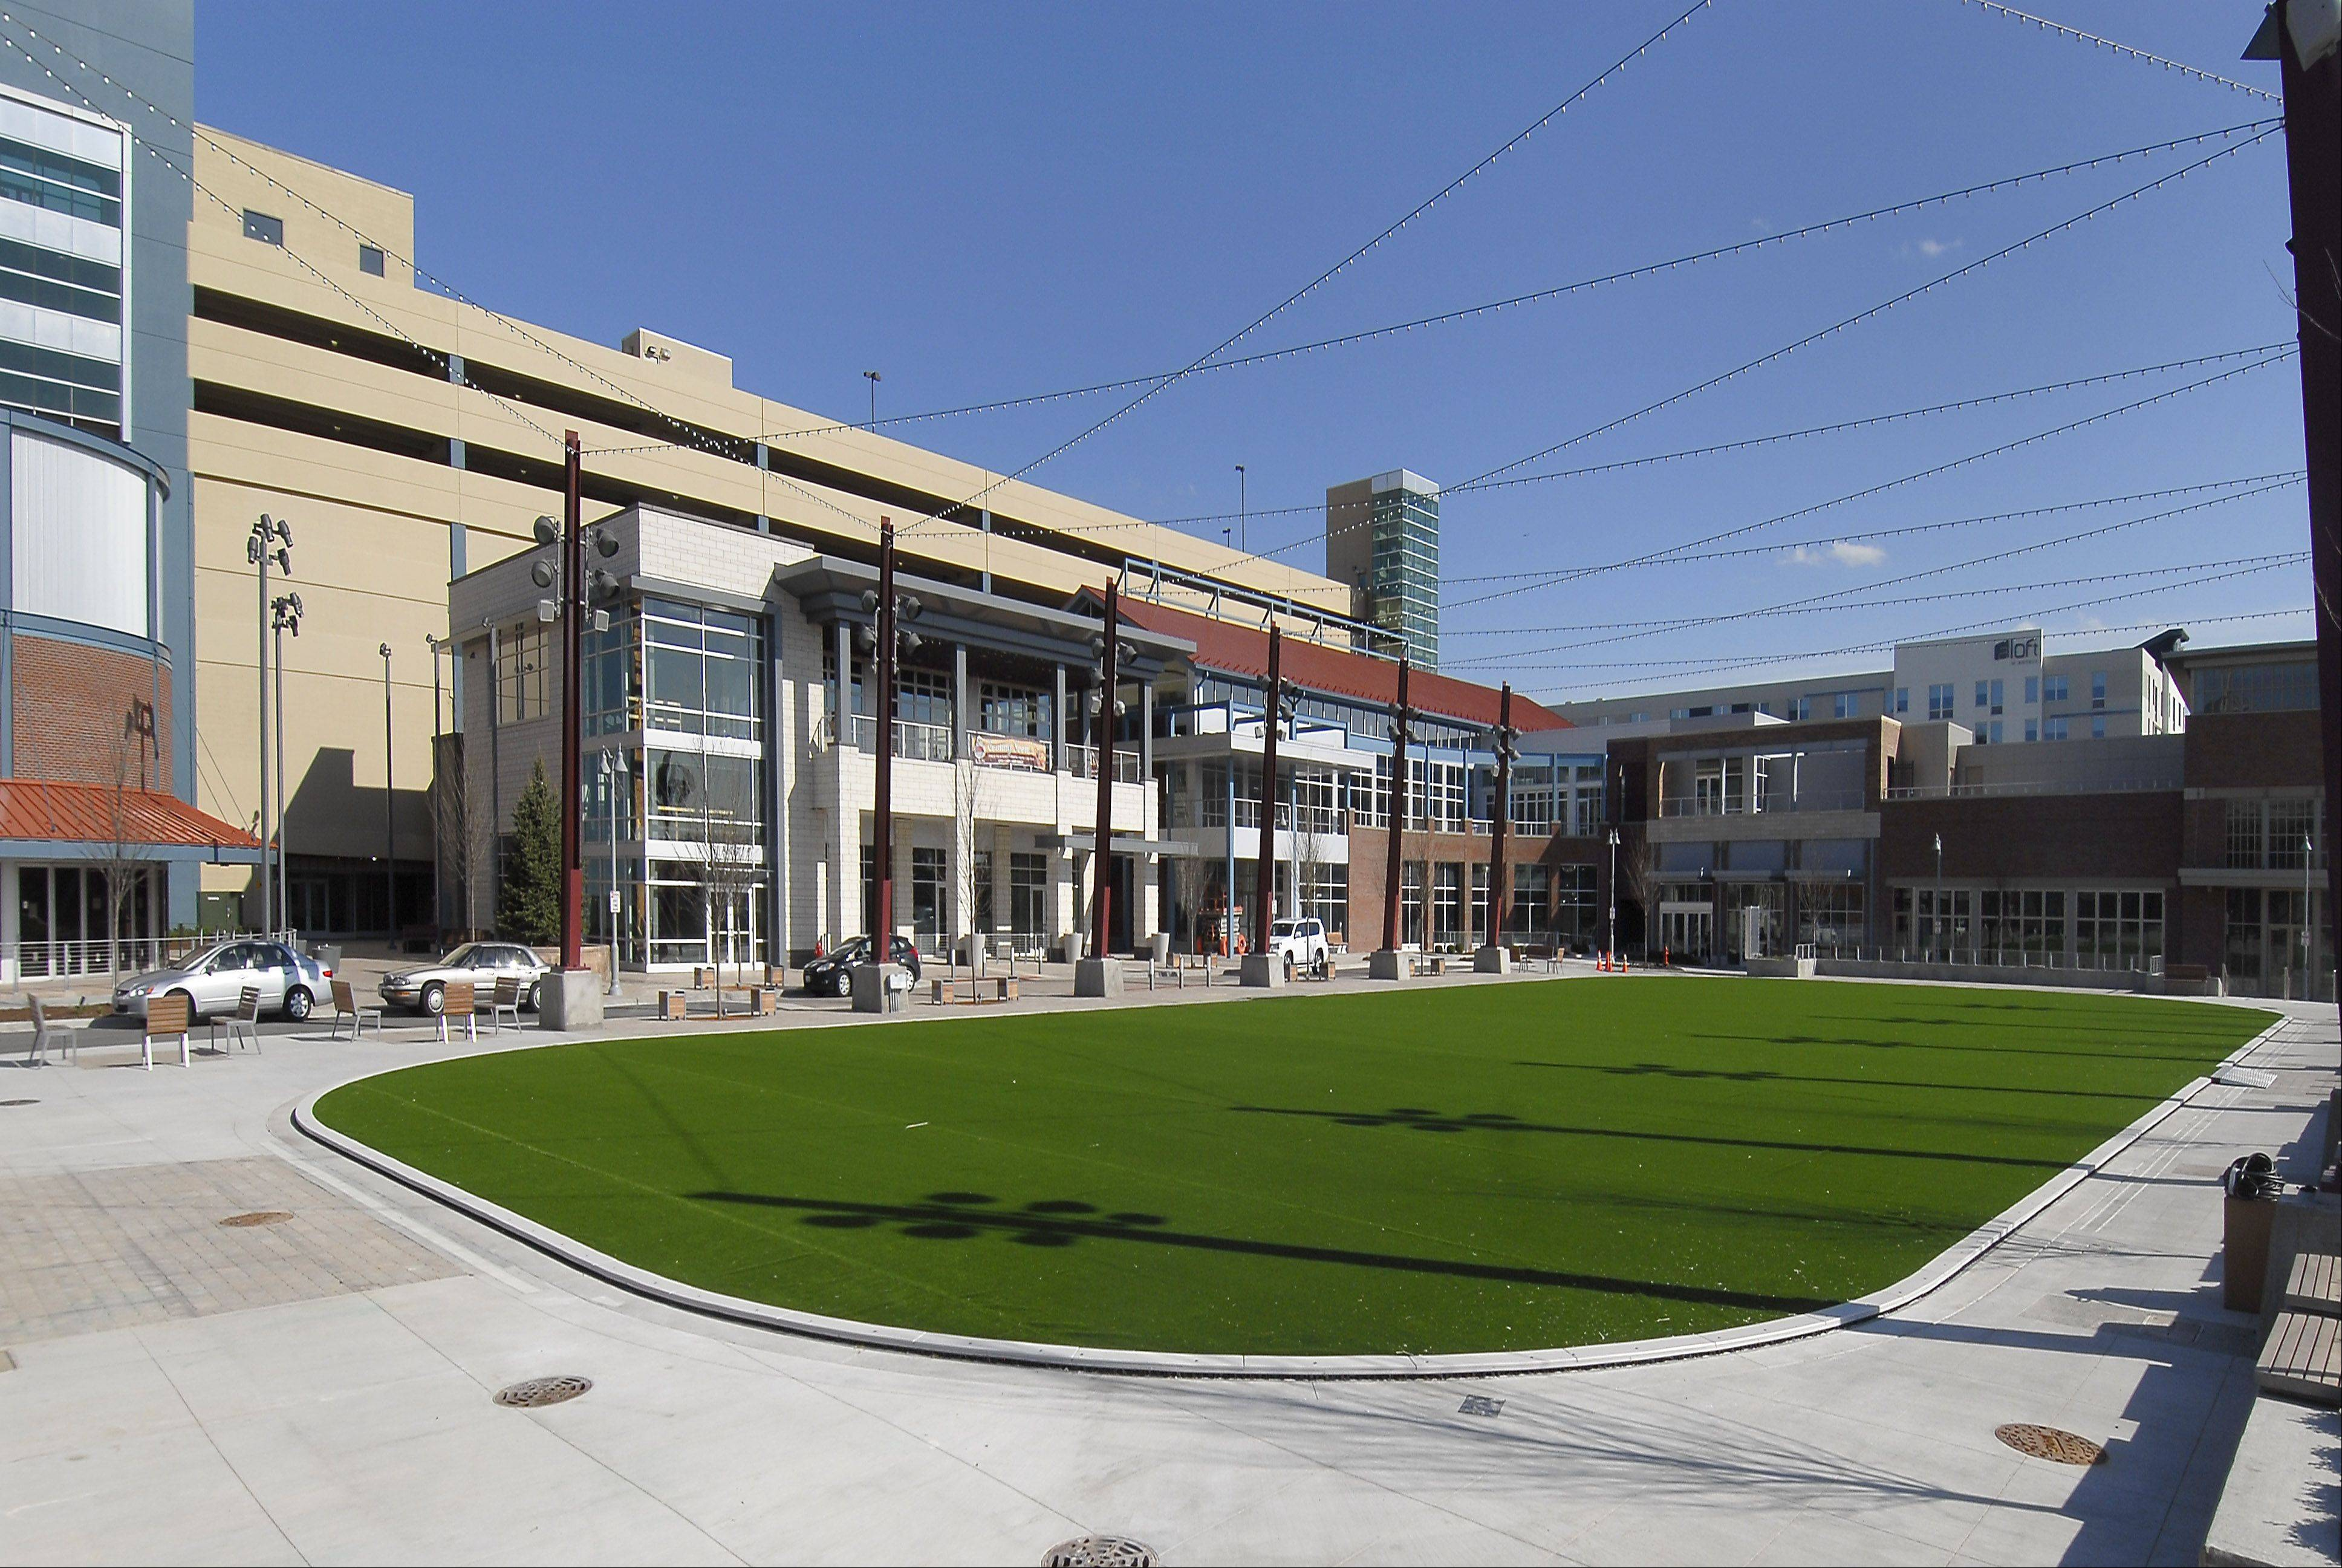 The Park at Rosemont entertainment district features an artificial turf lawn that doubles as an ice rink in winter. Rosemont officials announced Tuesday they have reached a deal with MB Financial Bank to sell naming rights to the district for $3 million.